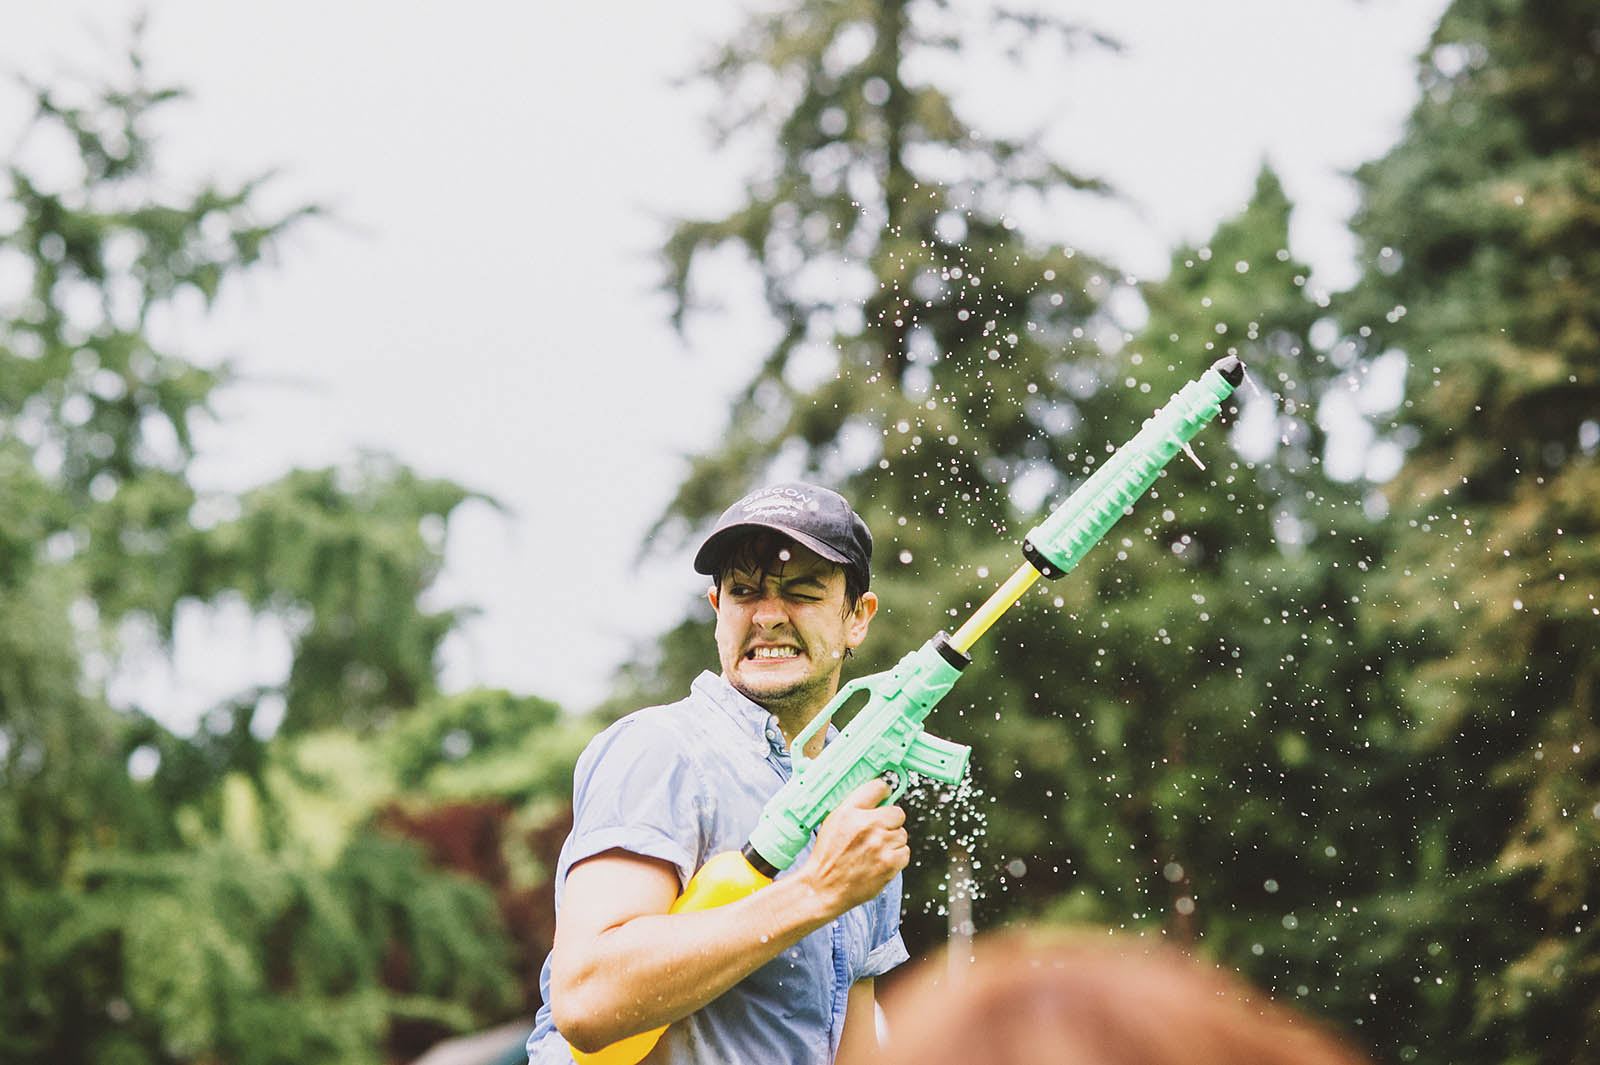 Portland Water Gun Fight in Laurelhurst Park